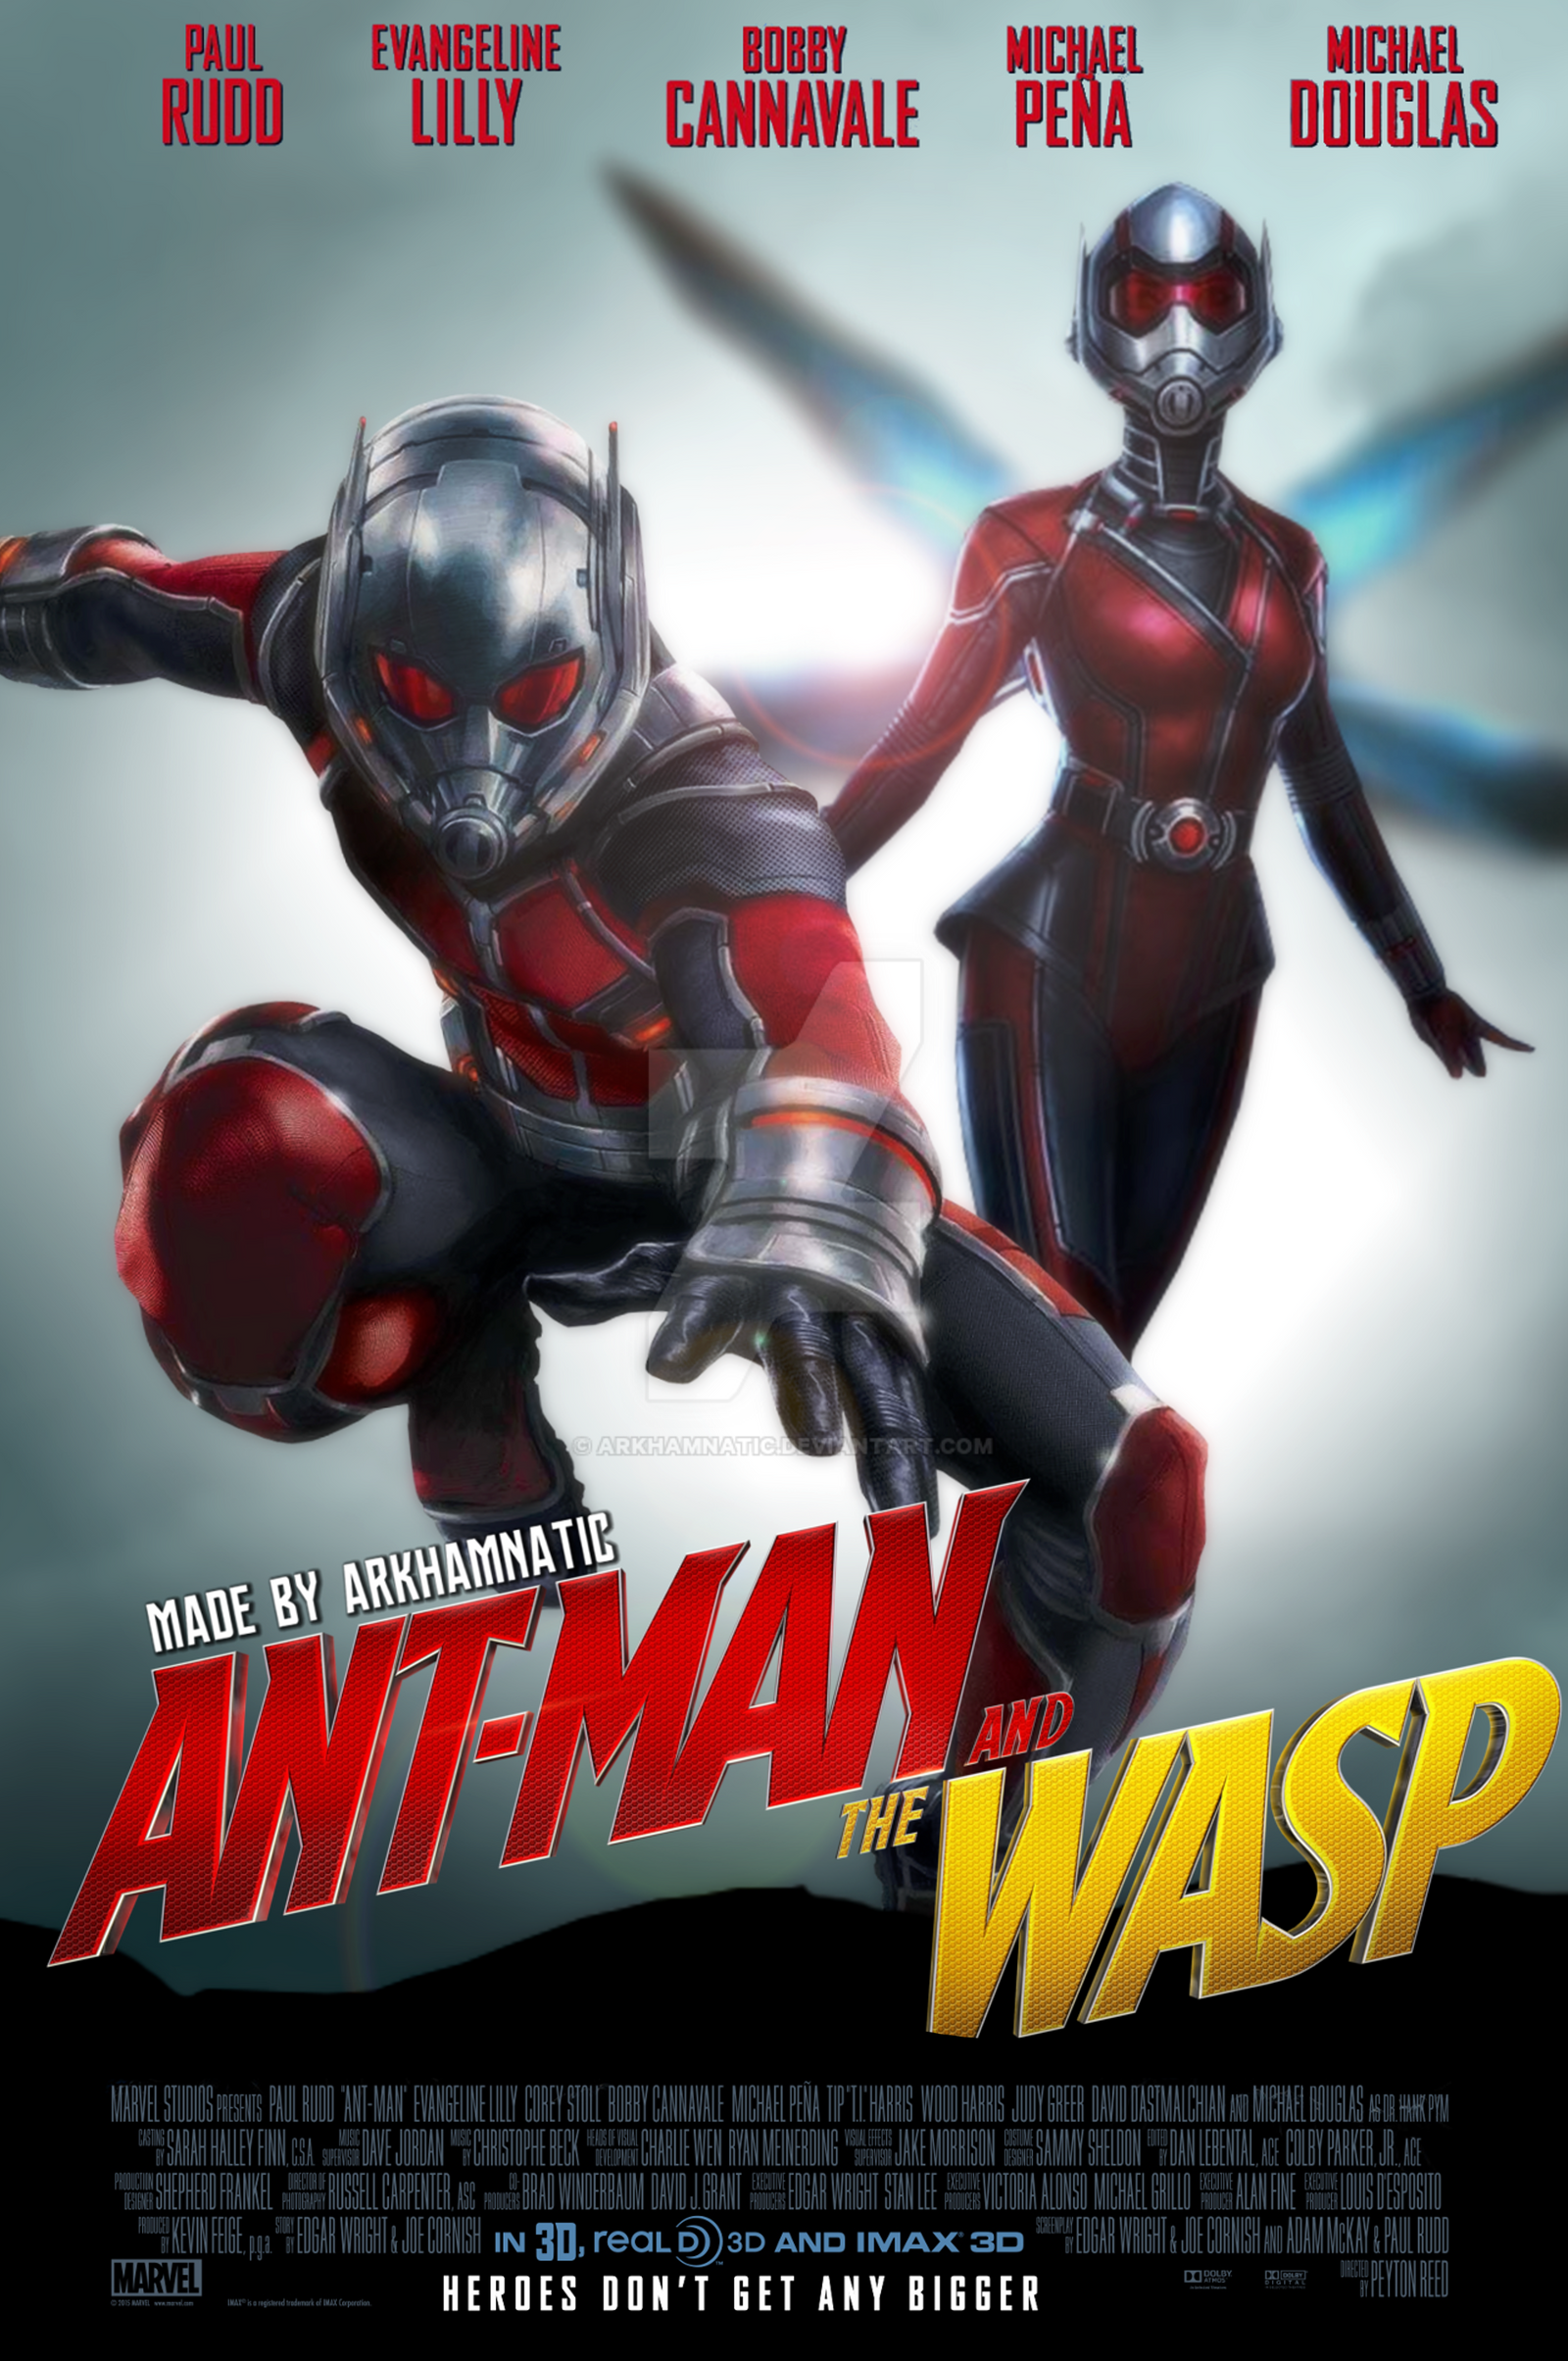 Ant-man and the Wasp movie poster by ArkhamNatic on DeviantArt